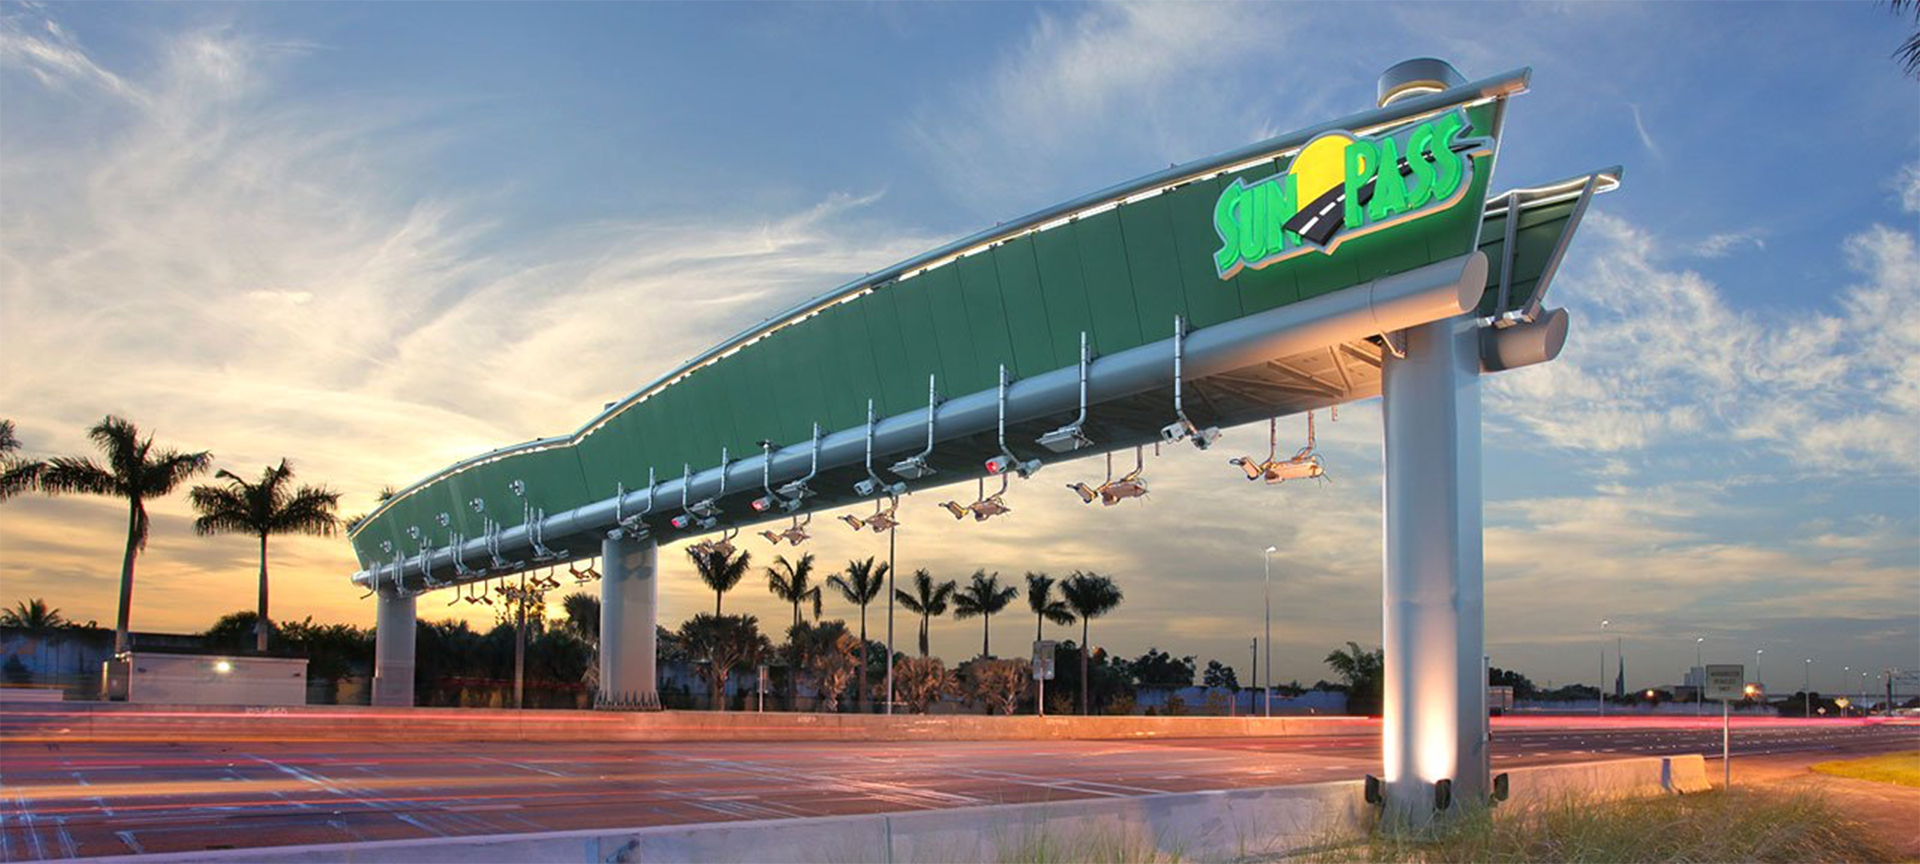 The easiest way to pay tolls in Florida is by Sunpass. This allows drivers to use drive-through Sunpass lanes with overhead gantries to detect and charge the toll to your Sunpass account. Tolls can be as little as $1 for short stretches of road up to $19.06 for the entire 265-mile length of the Florida Turnpike.